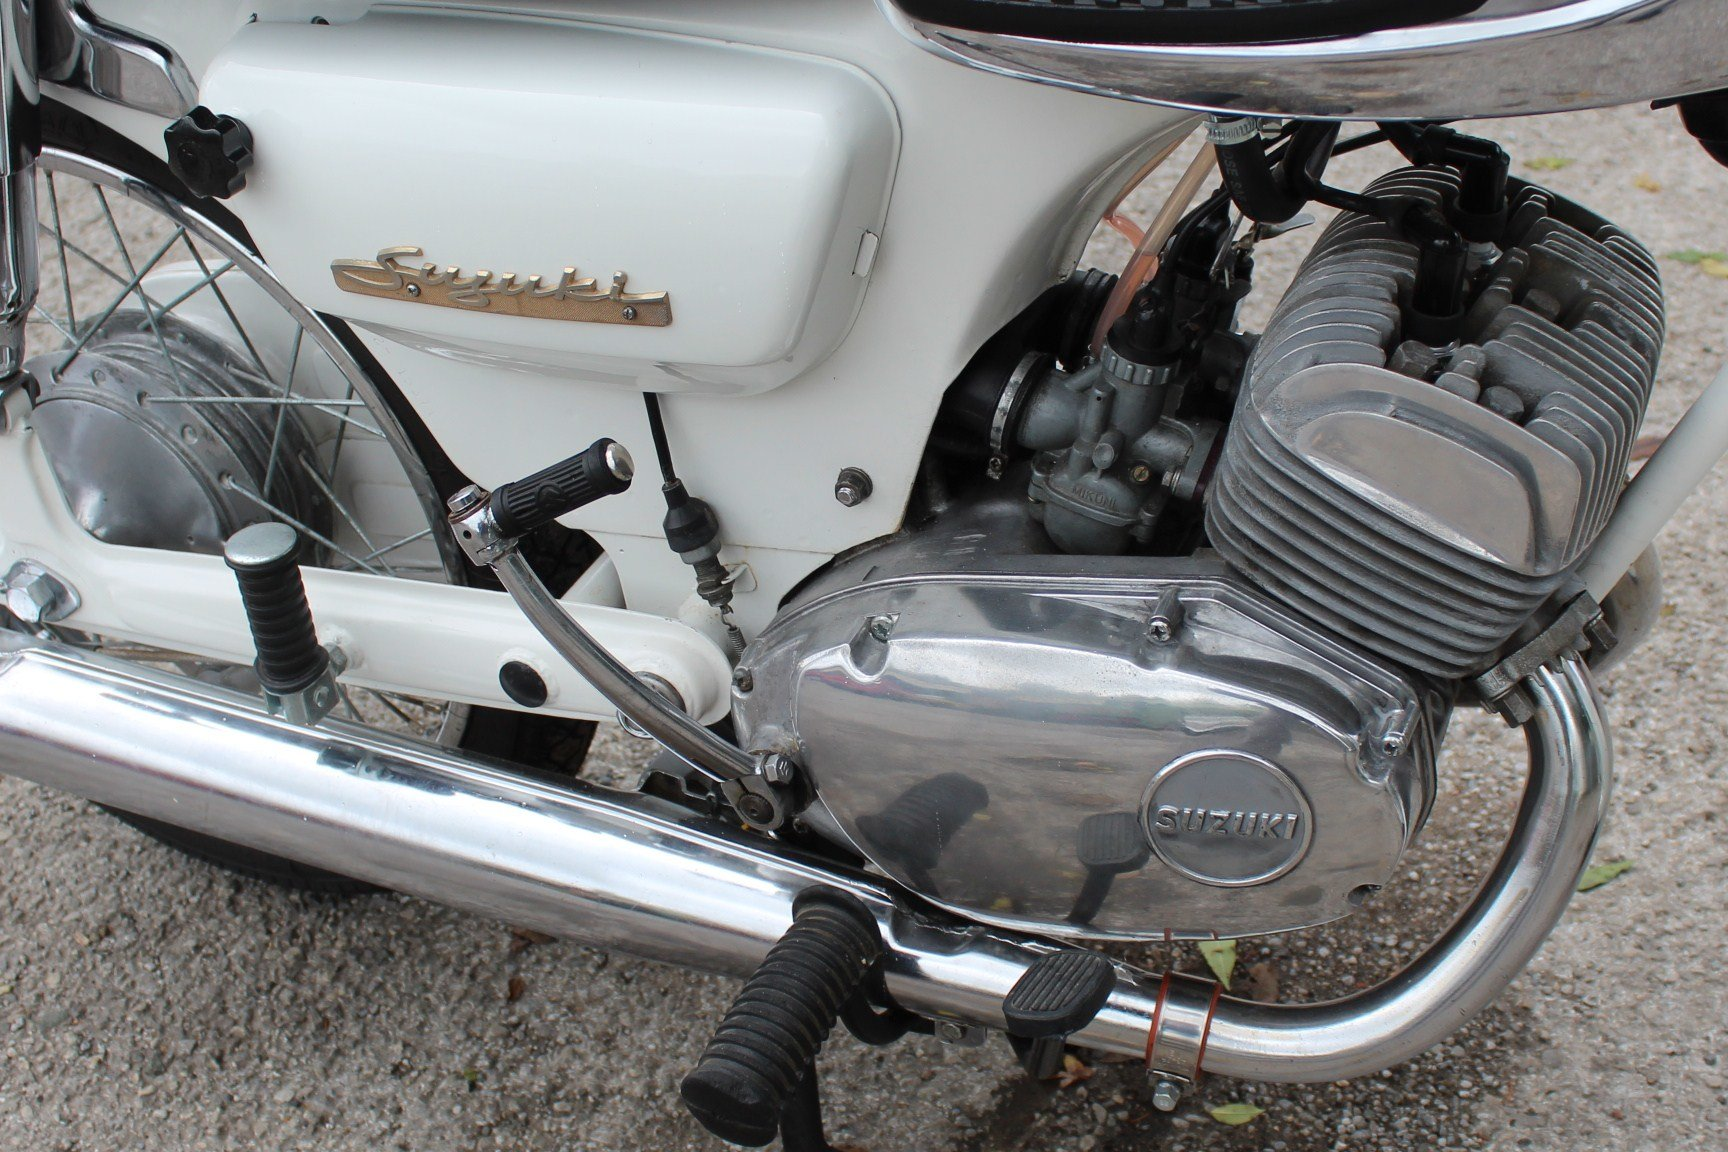 1966 966 Suzuki S32-2 150 cc Twin With Electric Start  For Sale (picture 5 of 6)